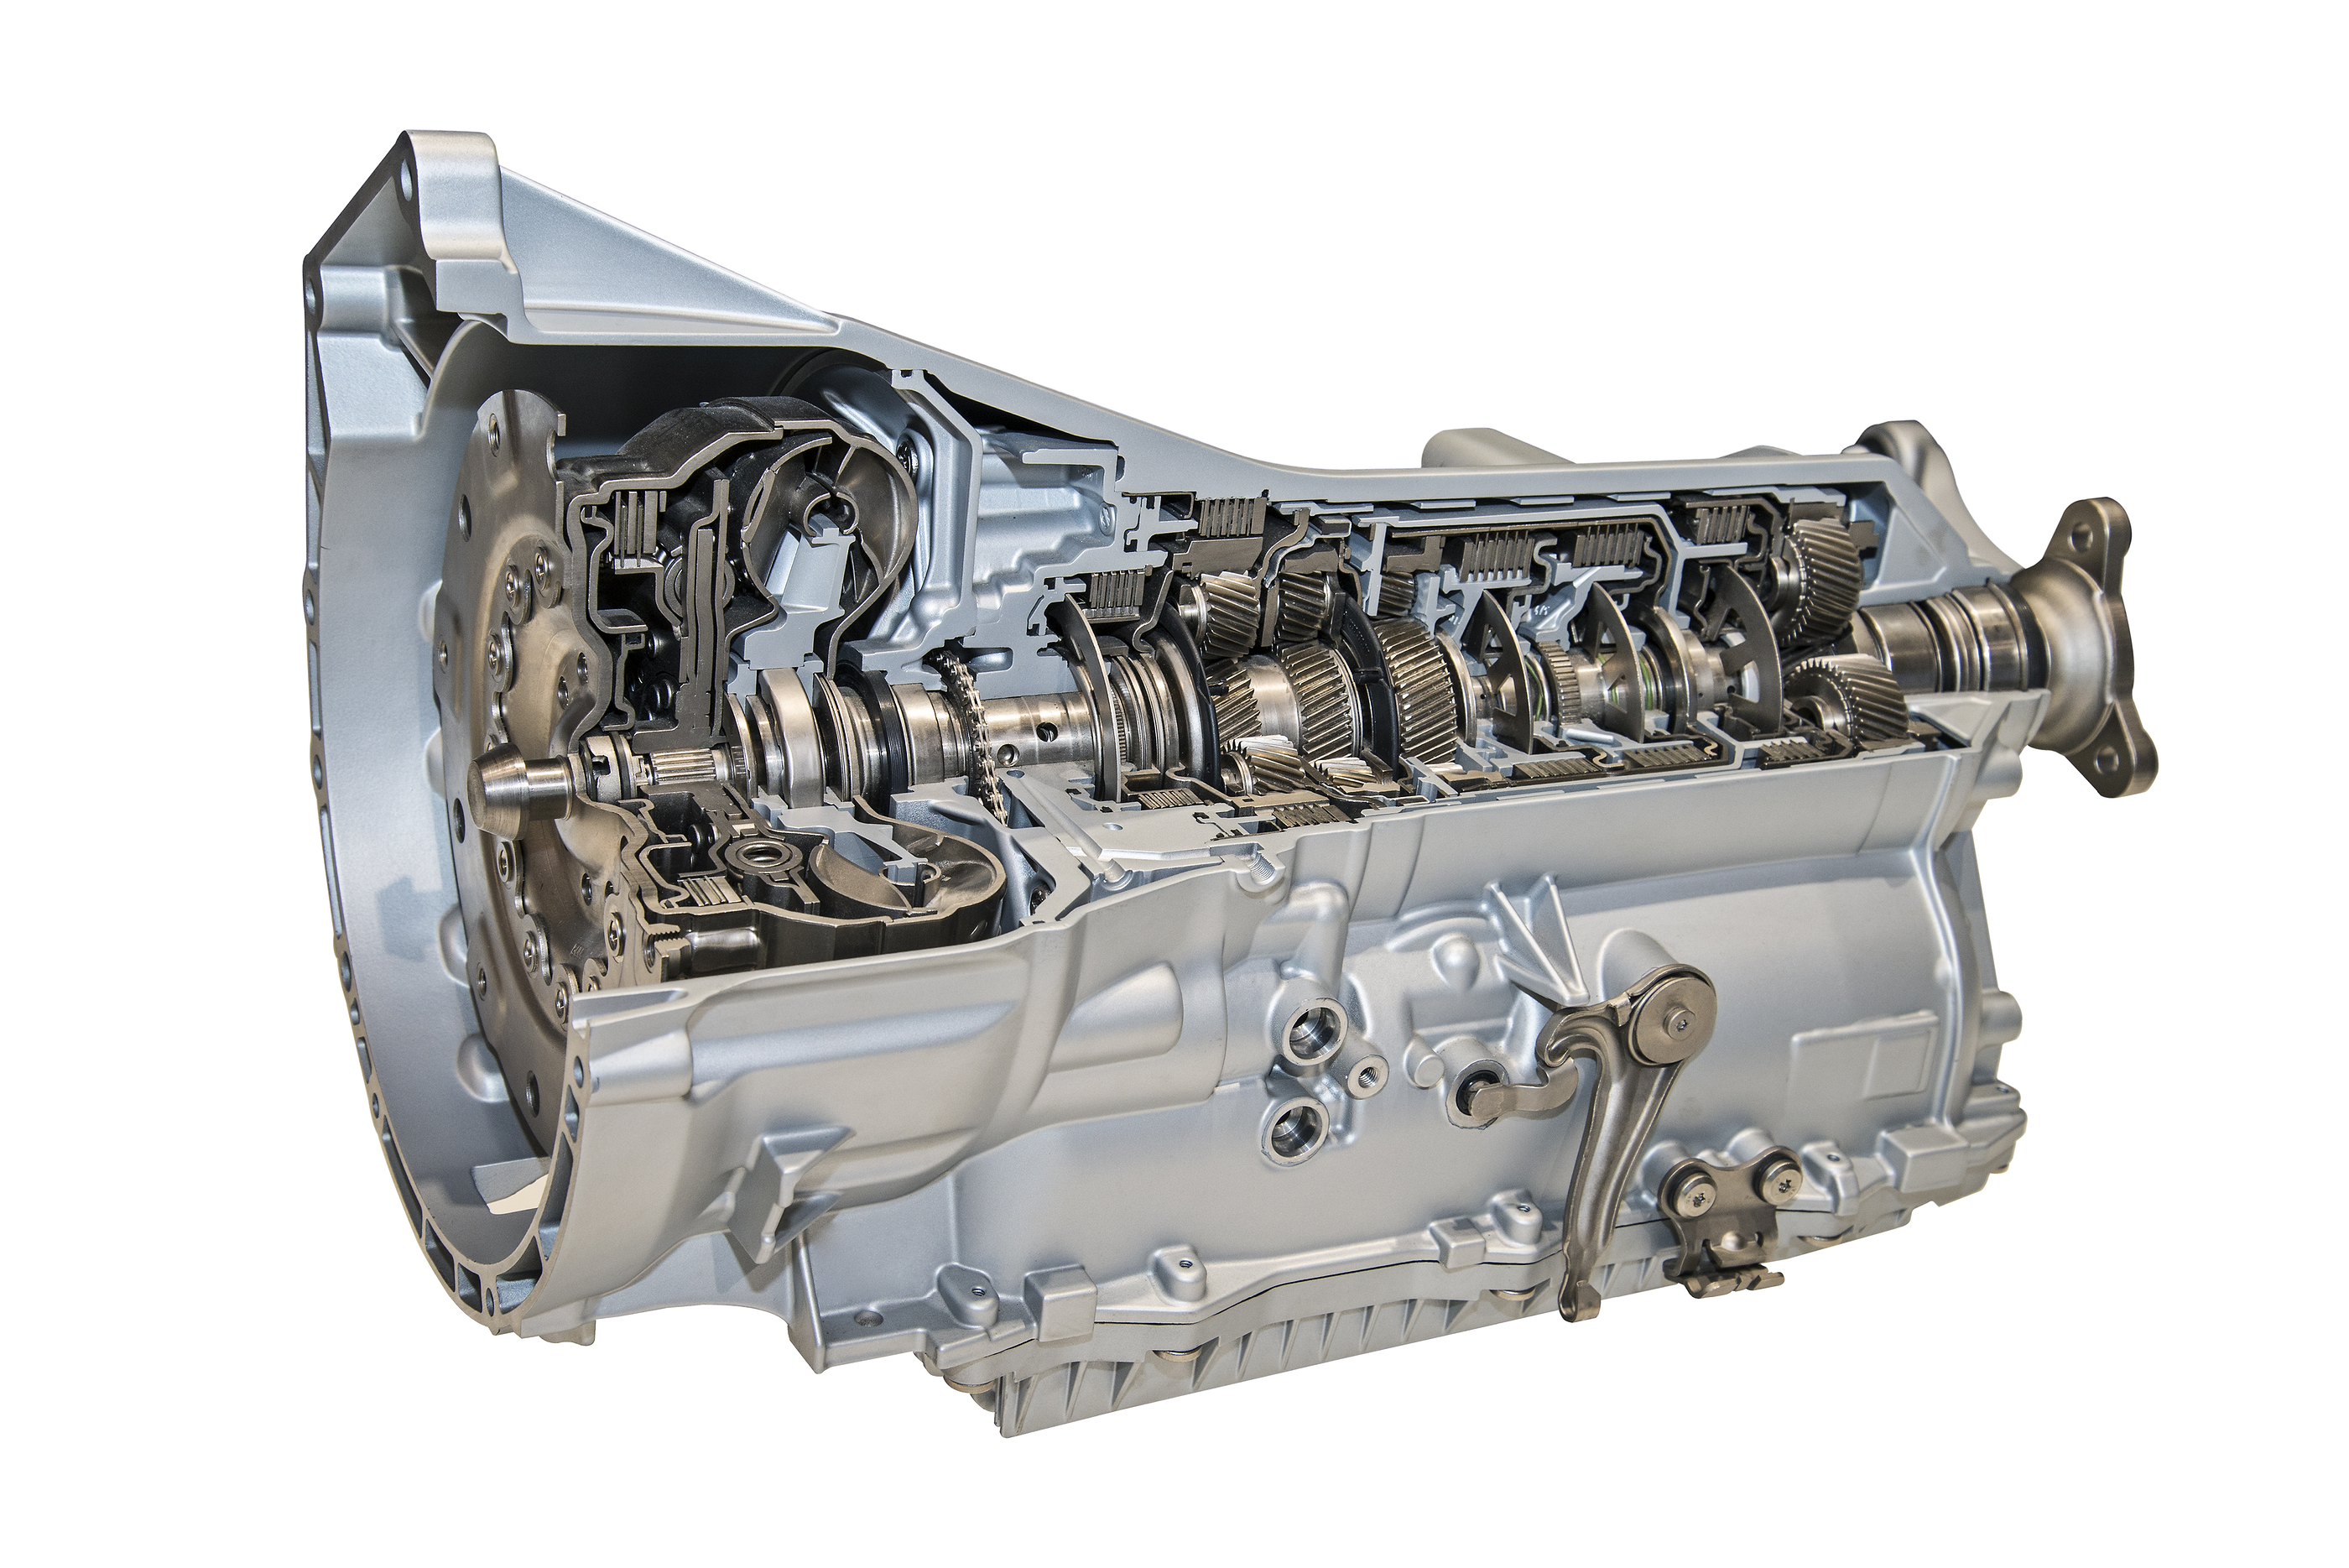 Modern Transmission For Cars.jpg